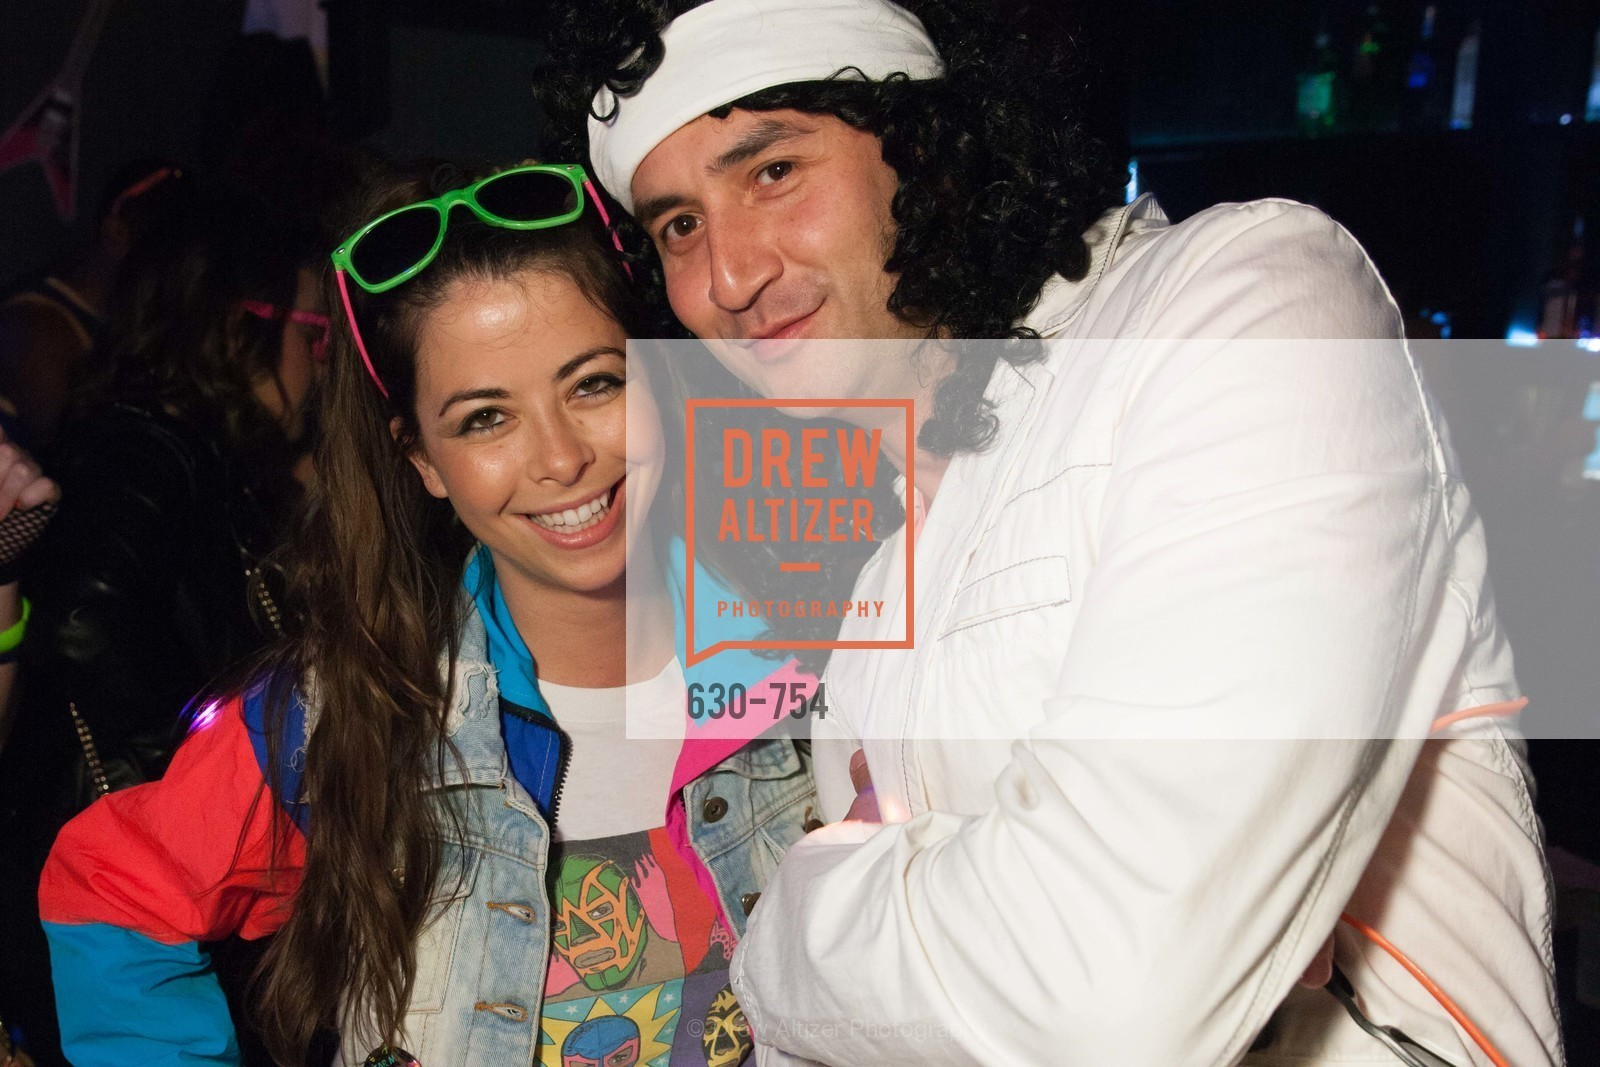 Kaley Diamond, Cameron Crockett, SPINSTERS OF SAN FRANCISCO Party Like It's 1985 Charity Party, US, May 29th, 2015,Drew Altizer, Drew Altizer Photography, full-service agency, private events, San Francisco photographer, photographer california